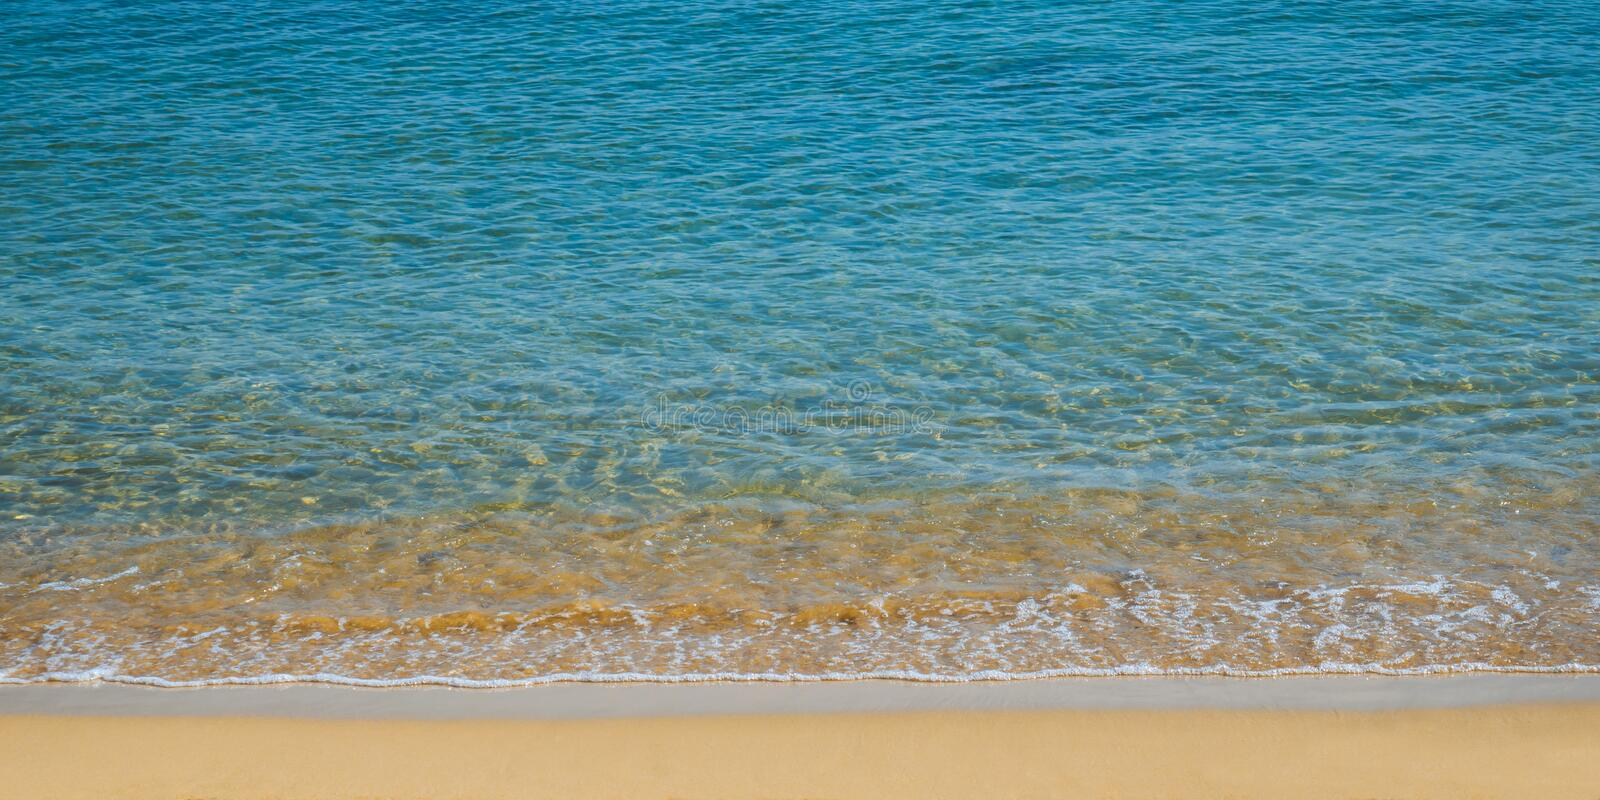 Clam and beautiful empty beach - amazing blue clear sea water and orange sand stock photo